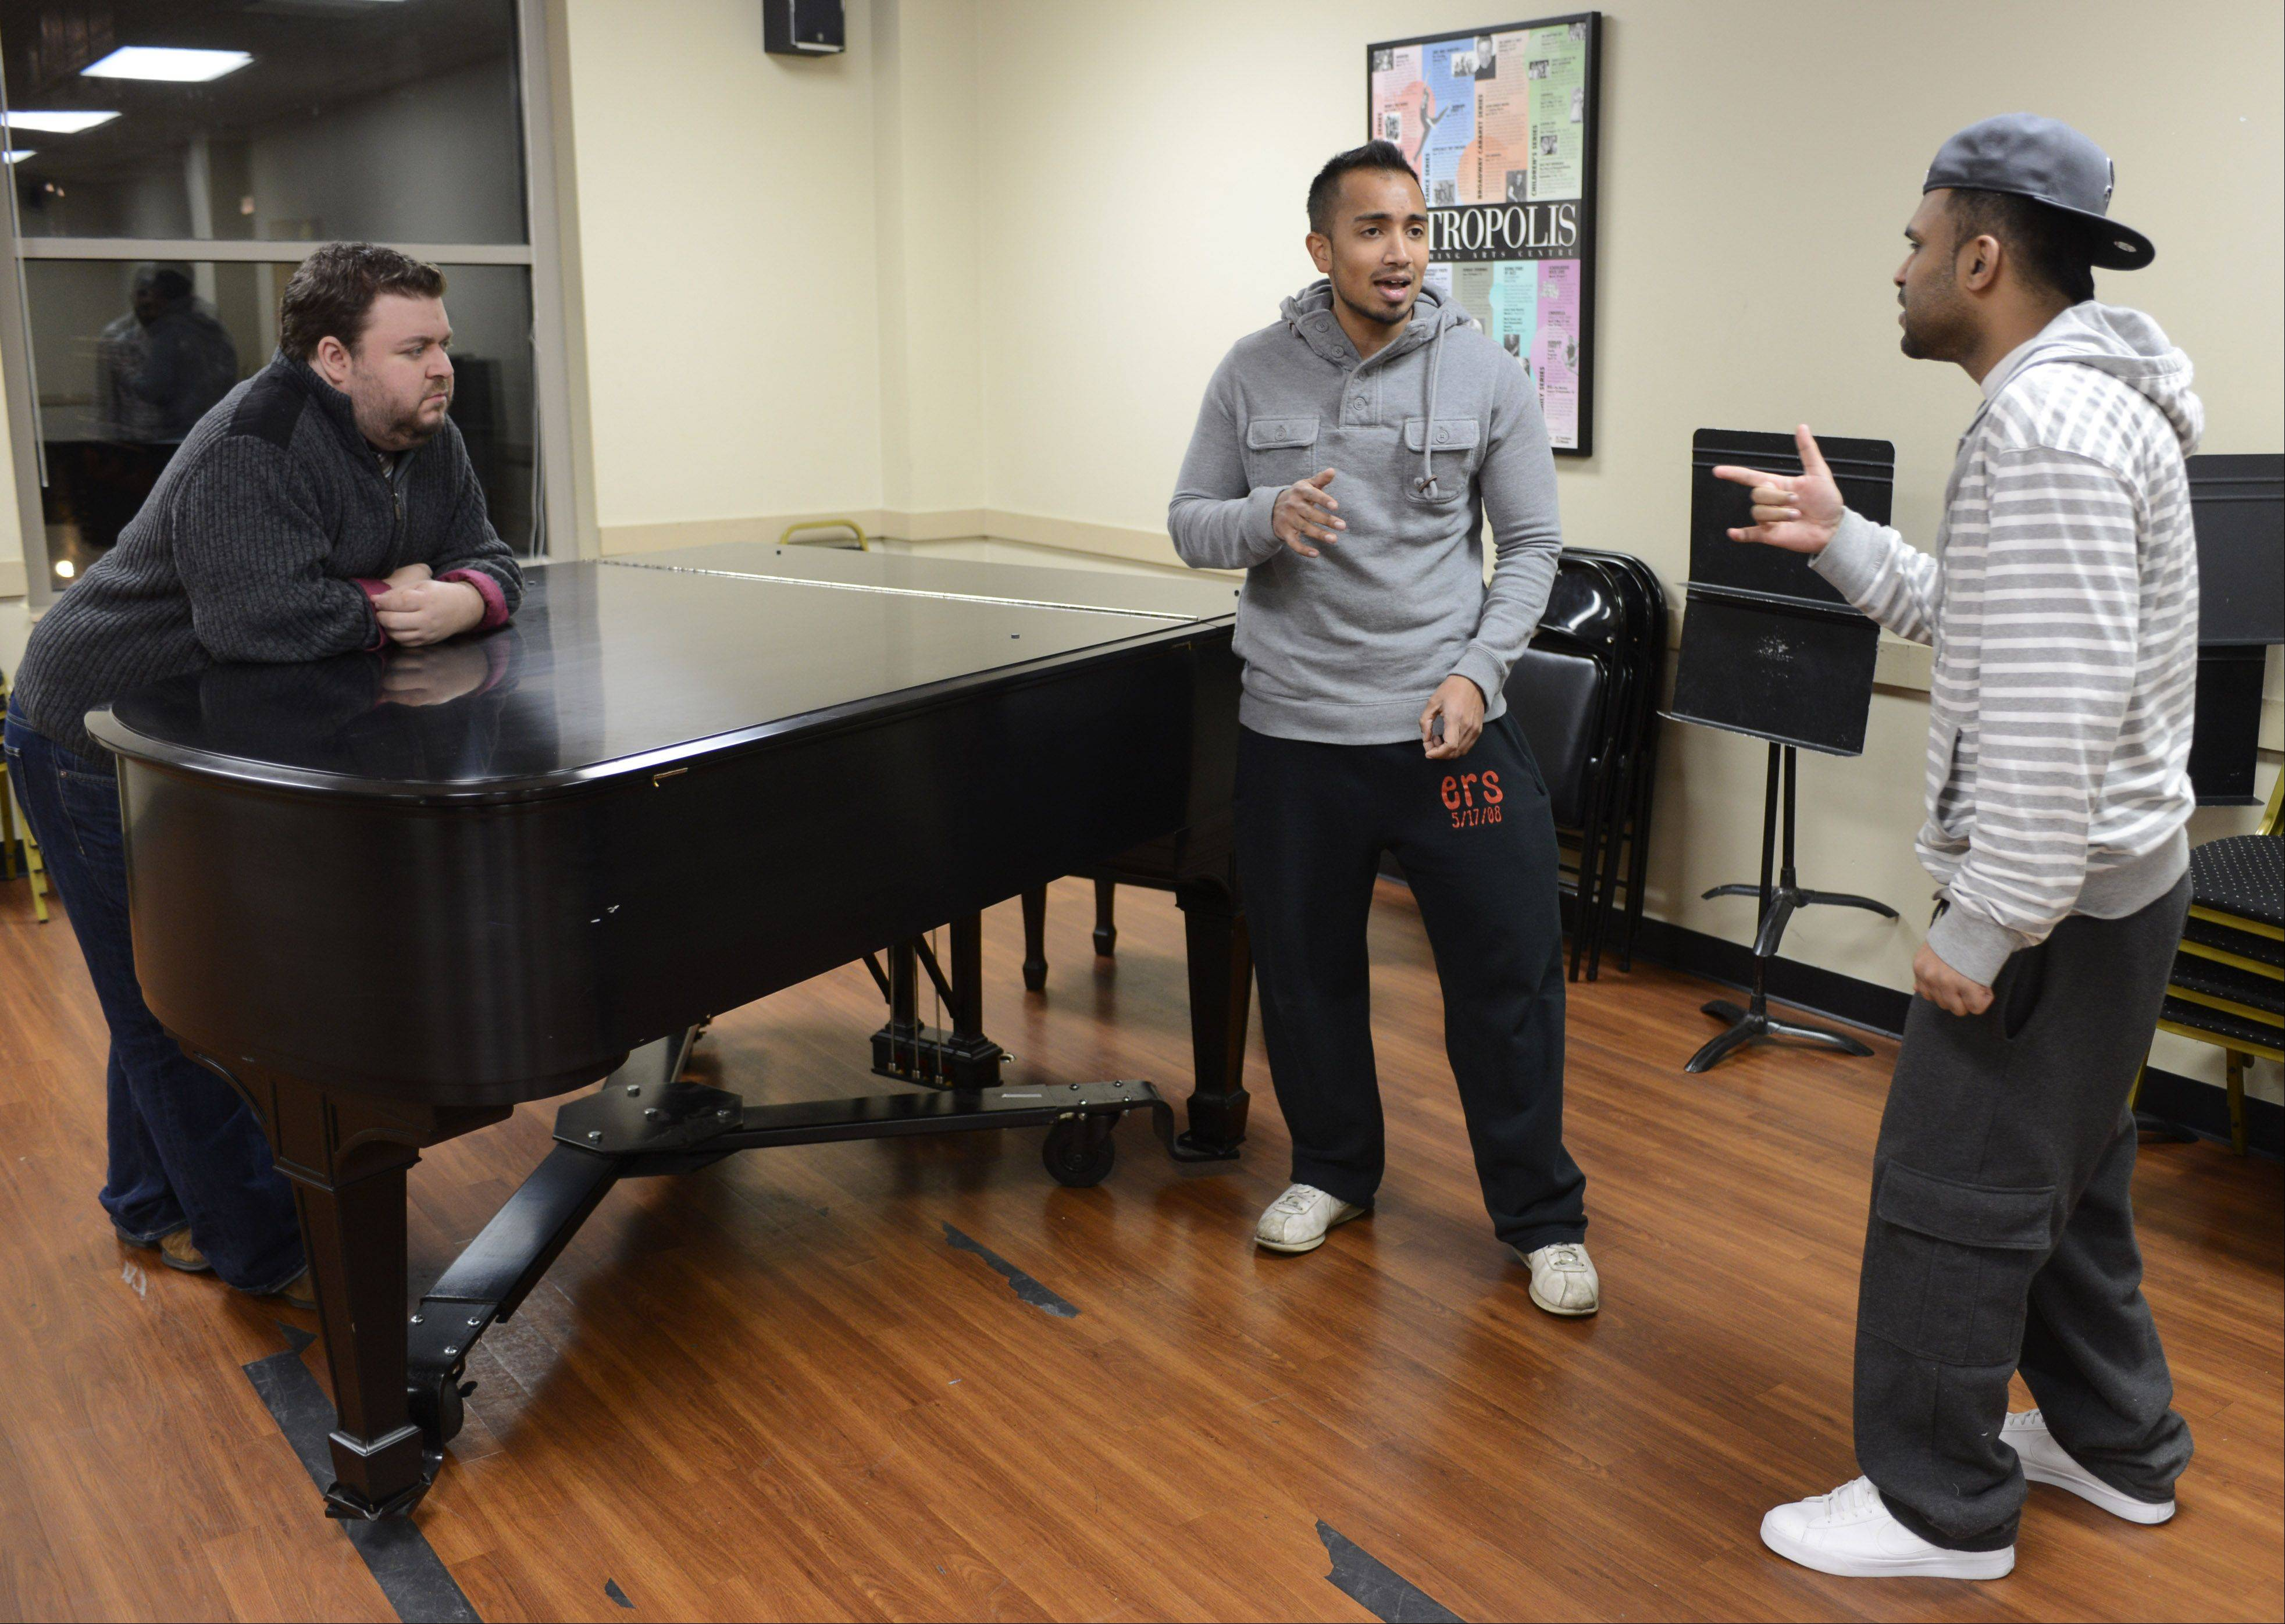 JOE LEWNARD/jlewnard@dailyherald.comShawn Kurian, center, and Sanu John, right, of iLLest Vocals rehearse with Metropolis music director Micky York.